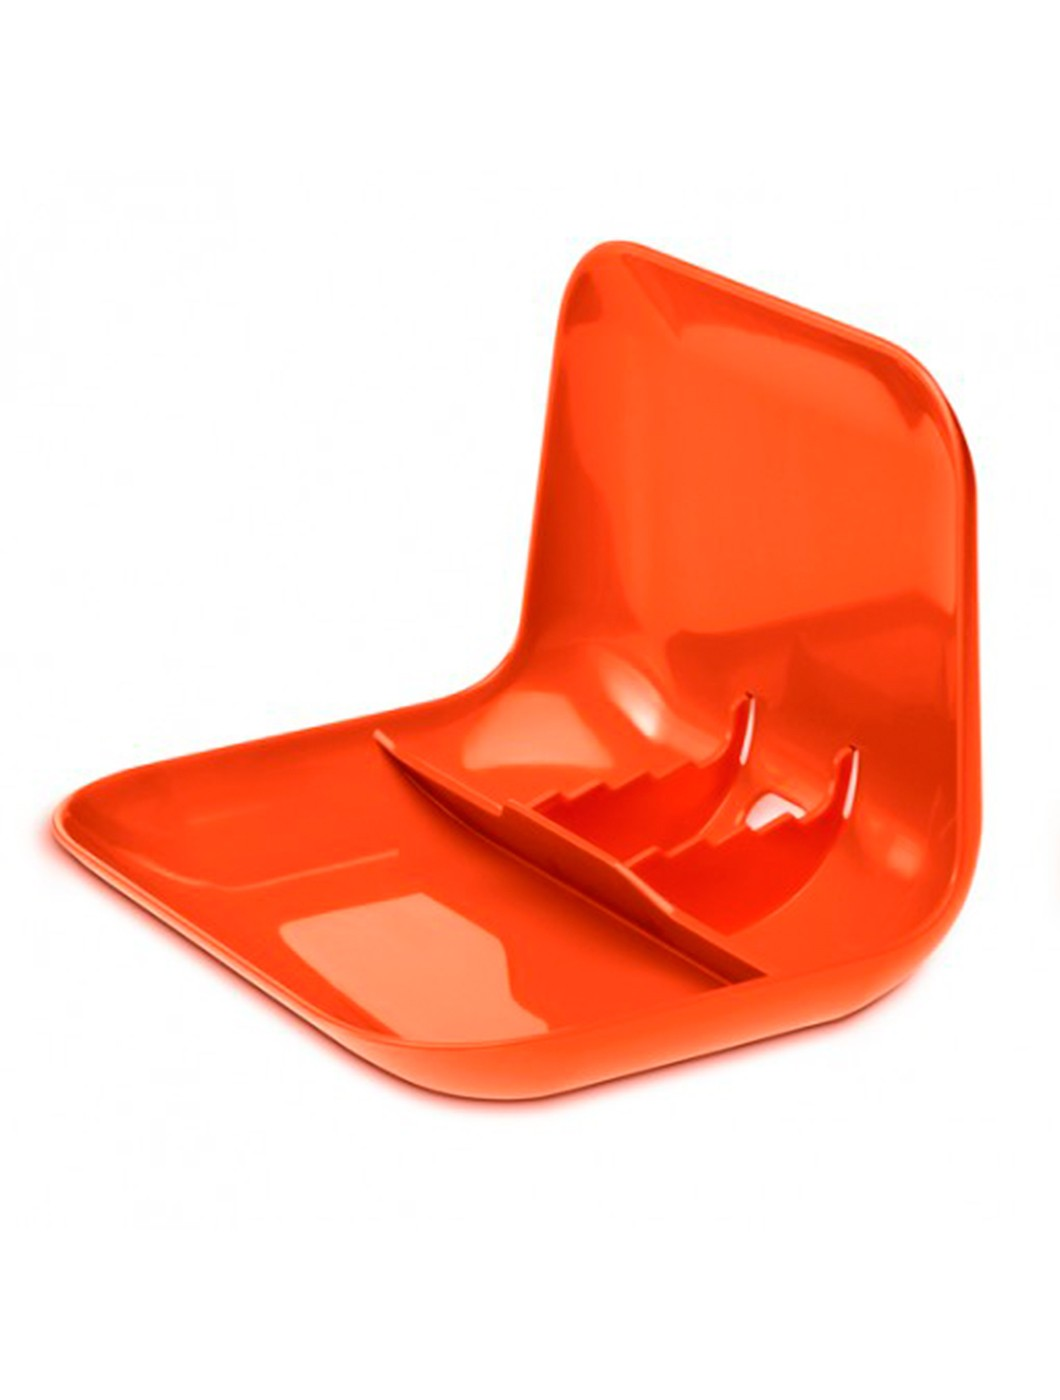 Private Tablet stand (Orange)